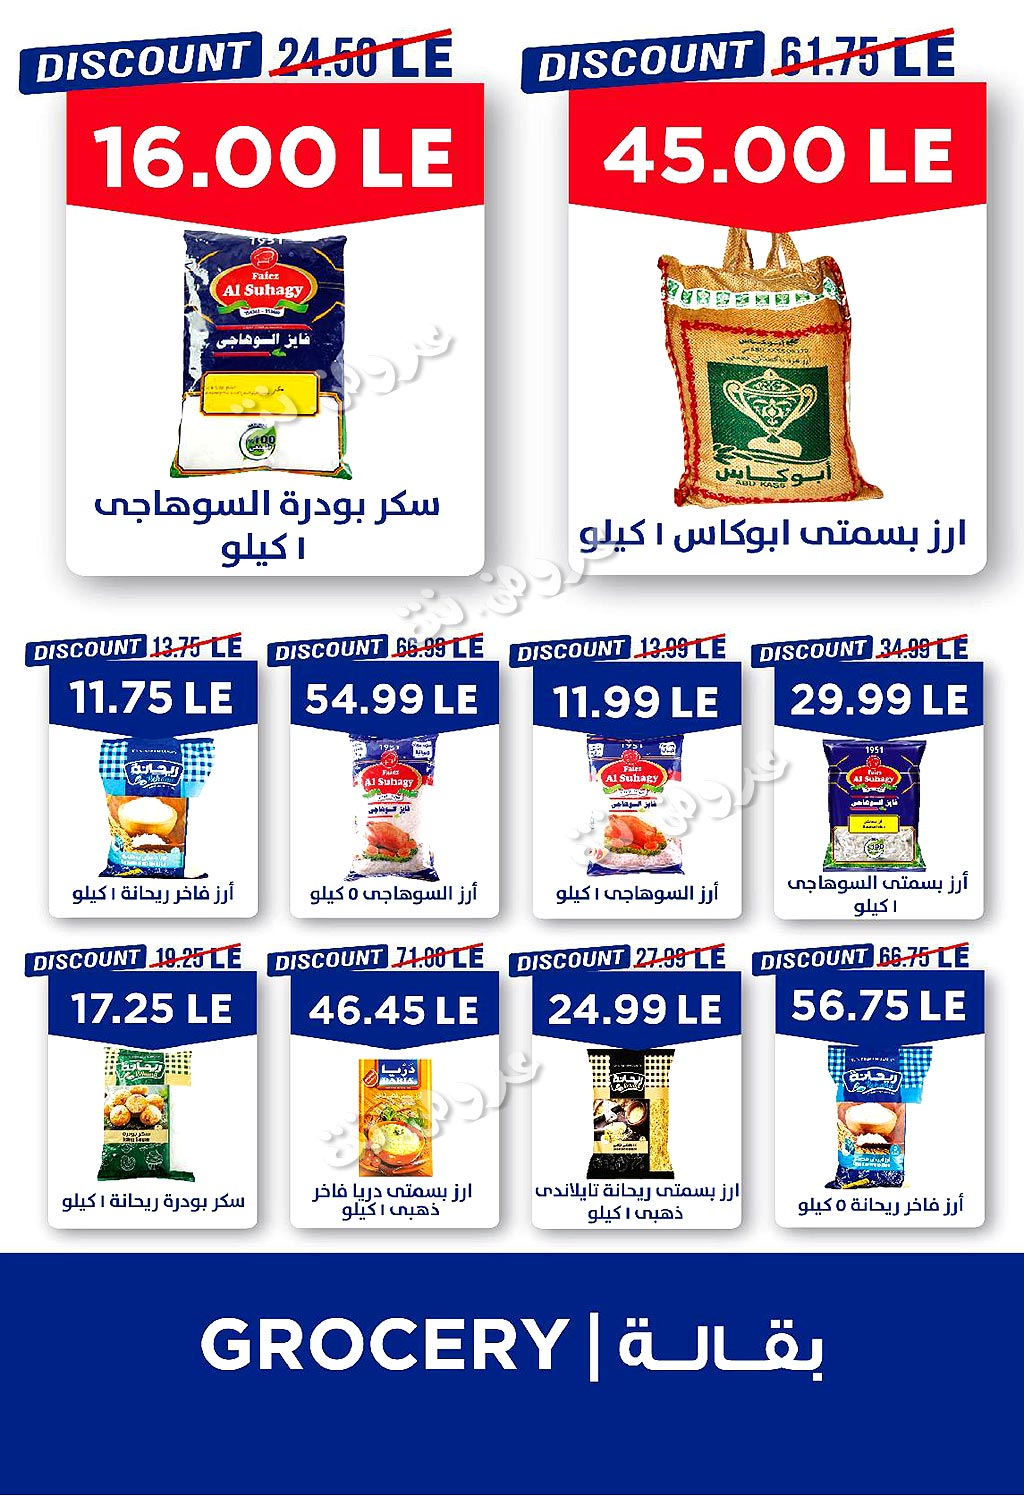 metro offers from 1may to 15may 2021 page number 16 عروض مترو من 1 مايو حتى 15 مايو 2021 صفحة رقم 16